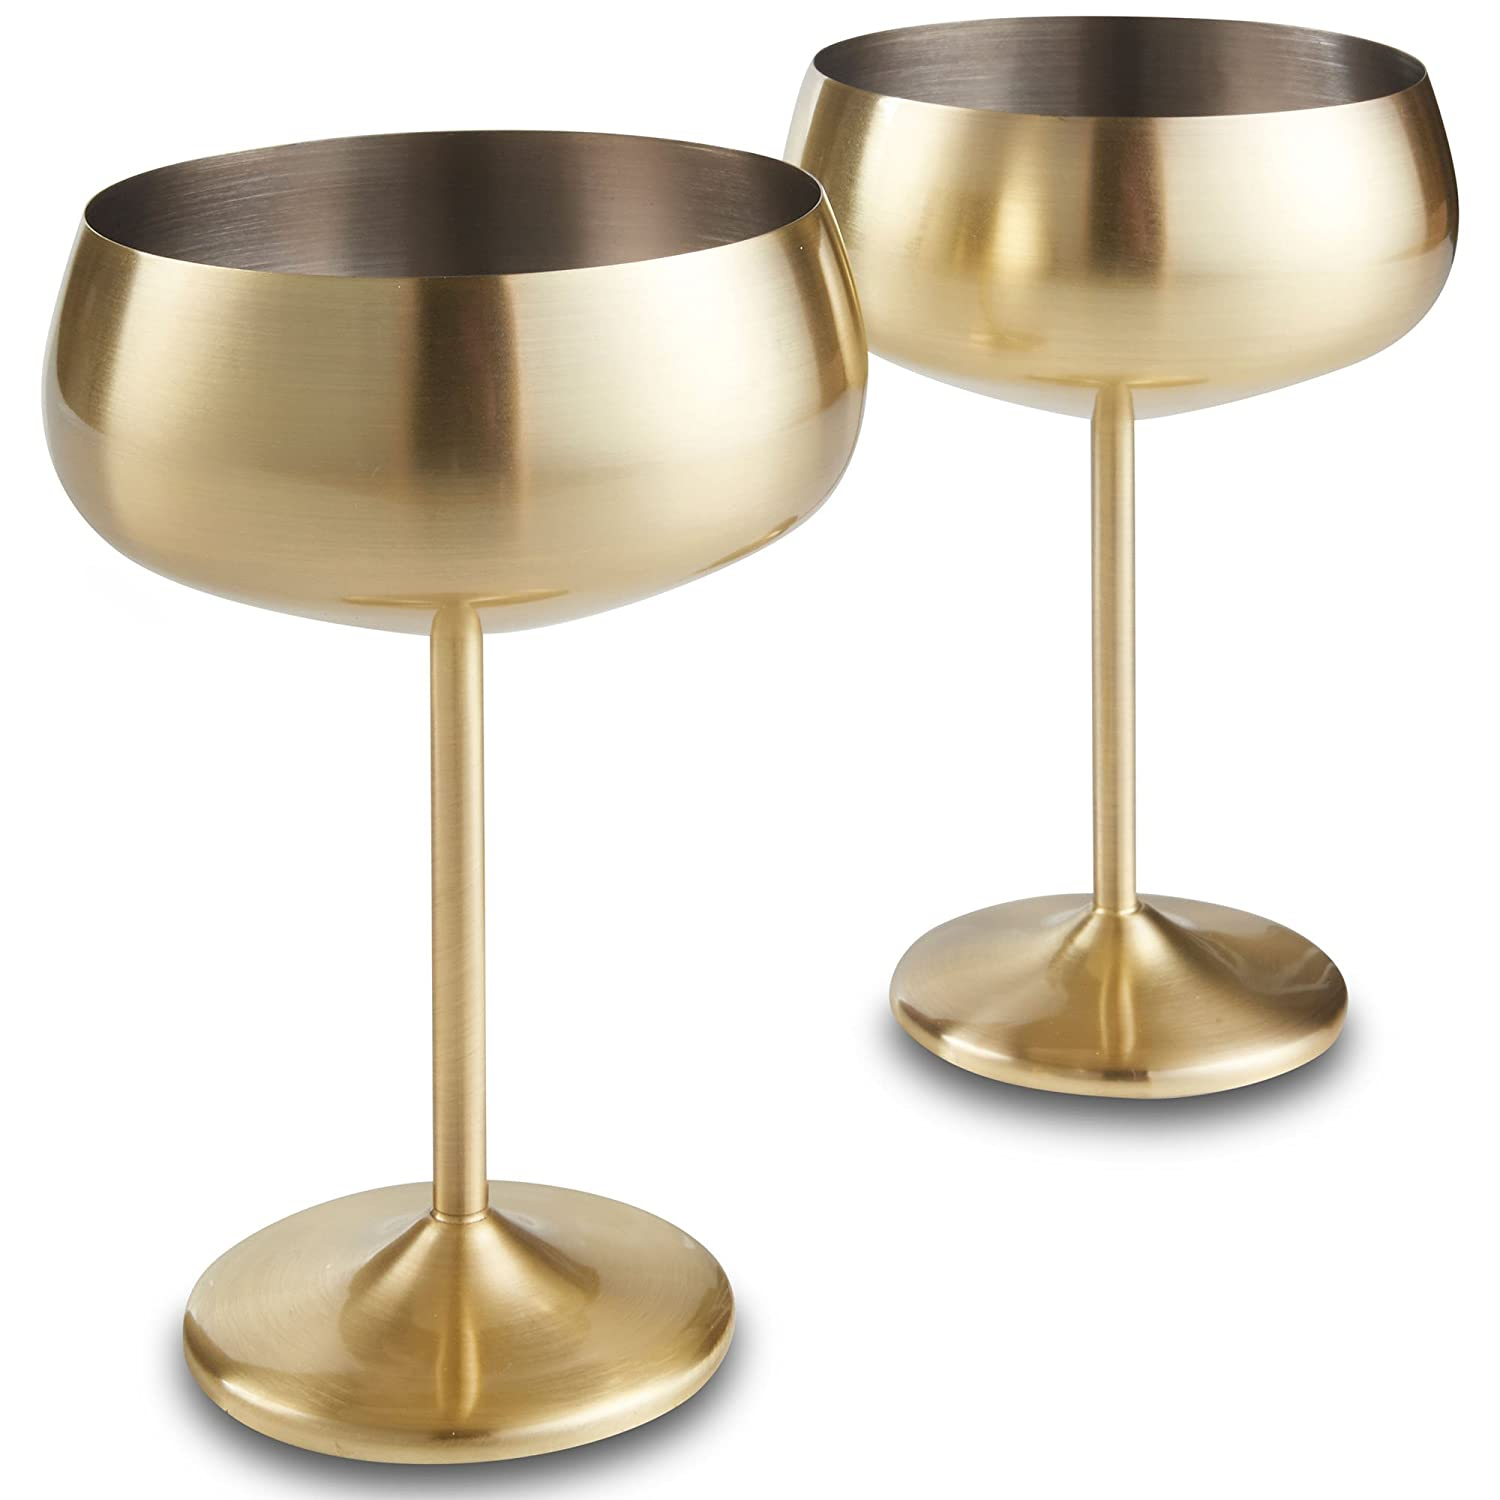 VonShef Champagne Coupe Glasses Brushed Gold Set of 2 – Shatterproof Stainless Steel